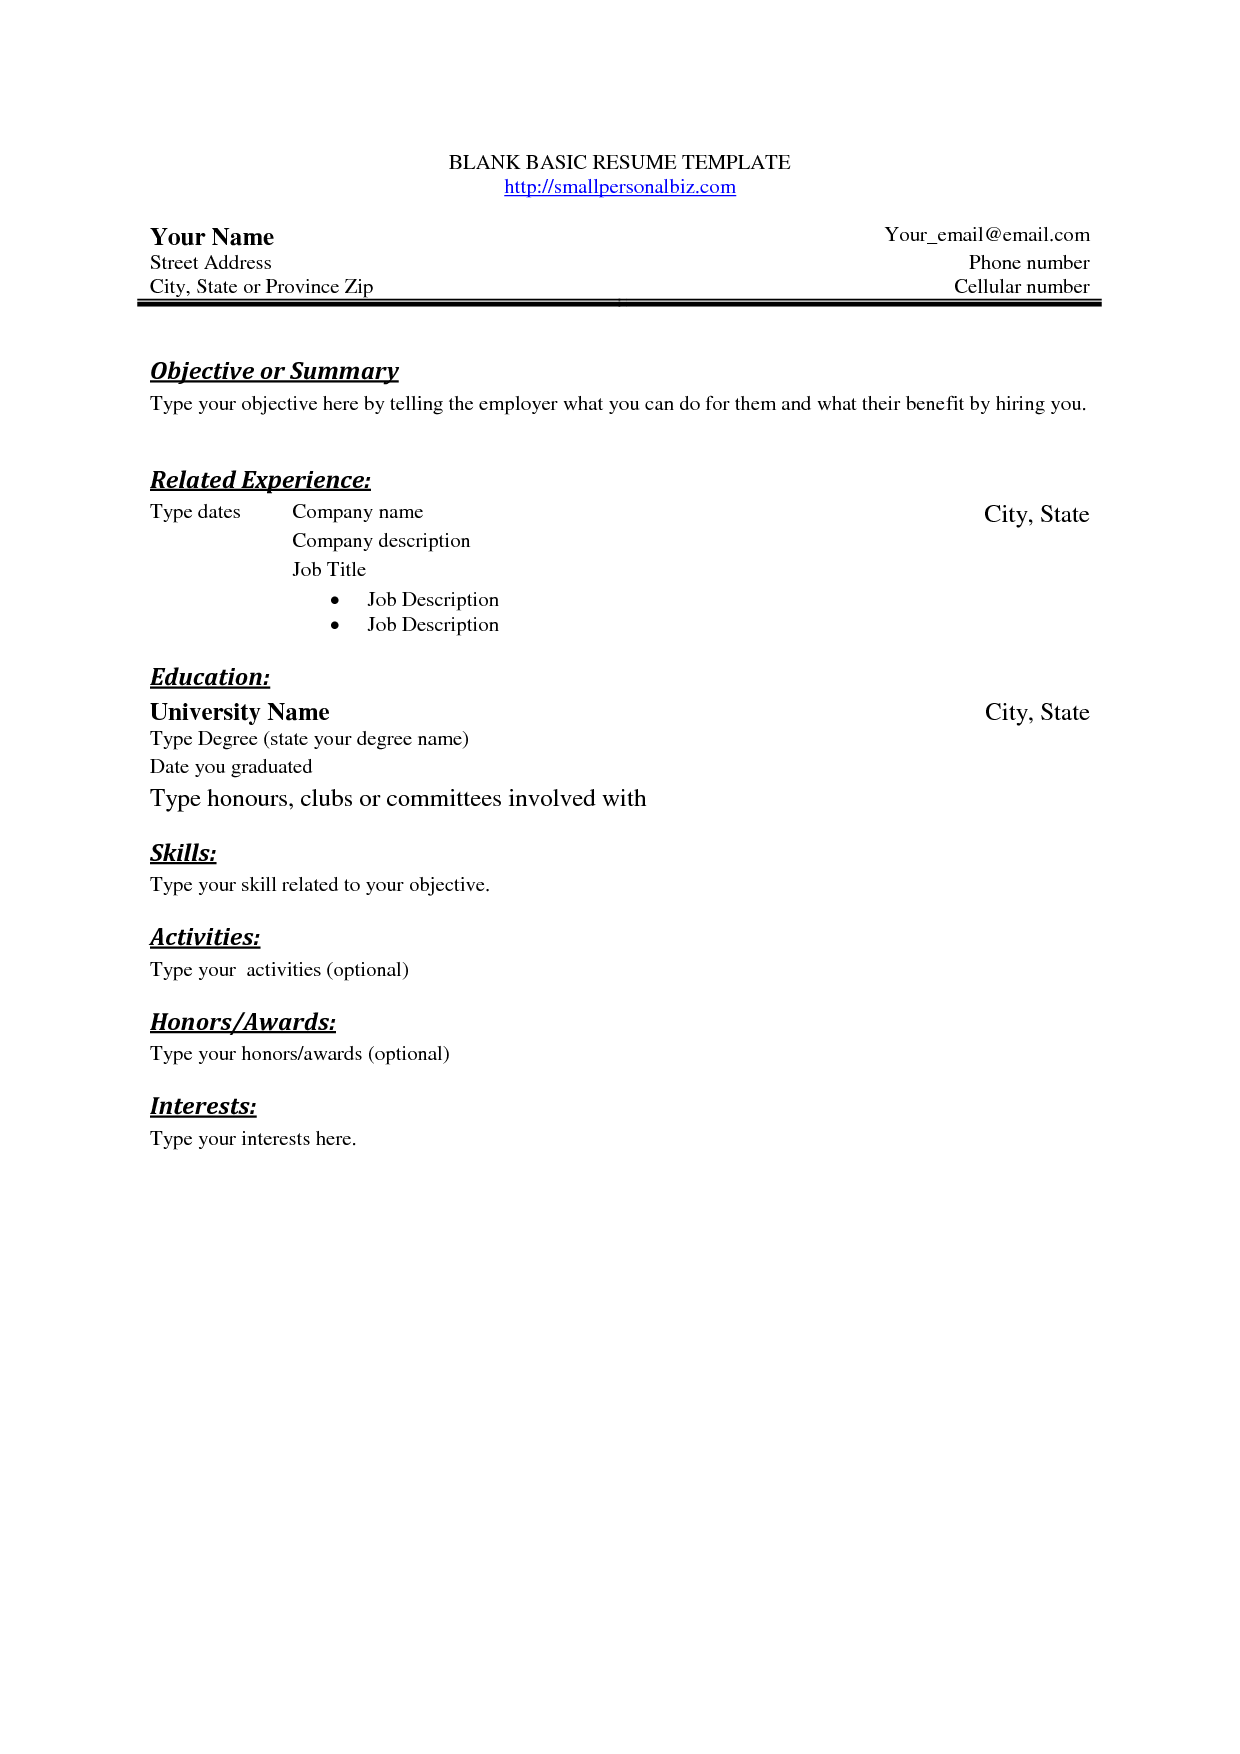 free basic blank resume template free basic sample resume easy resume templates free and easy resume builder